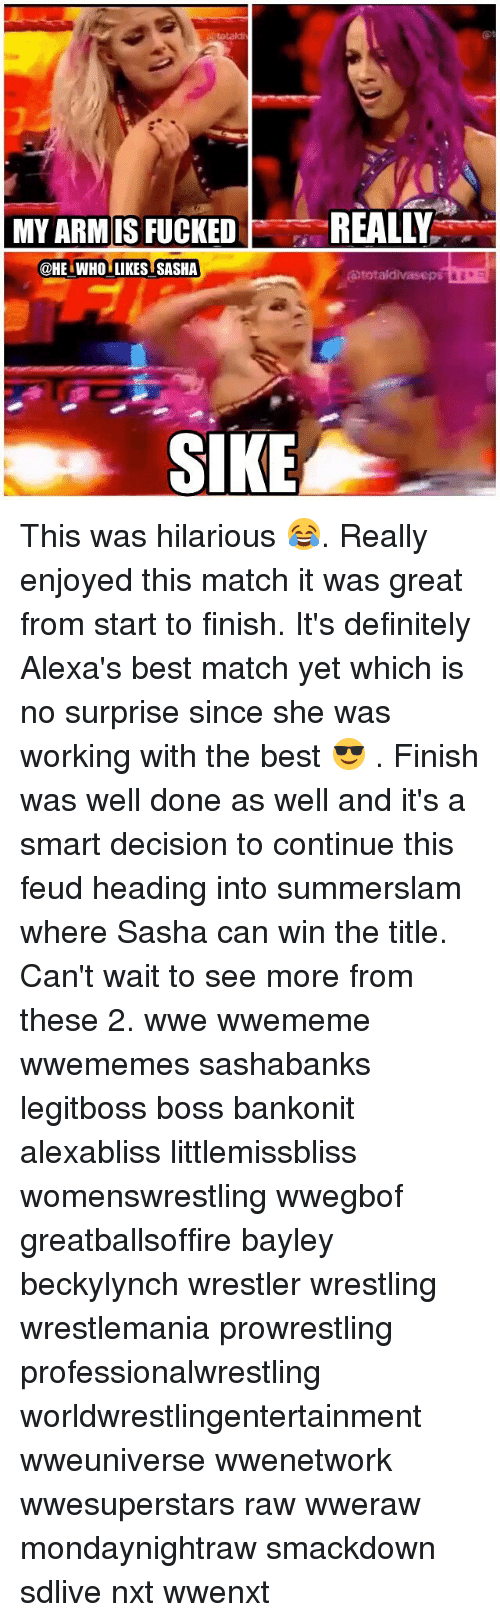 Definitely, Memes, and Wrestling: totald  MY ARM IS FUCKEDREALLY  @HE WHO LIKES SASHA  SIKE This was hilarious 😂. Really enjoyed this match it was great from start to finish. It's definitely Alexa's best match yet which is no surprise since she was working with the best 😎 . Finish was well done as well and it's a smart decision to continue this feud heading into summerslam where Sasha can win the title. Can't wait to see more from these 2. wwe wwememe wwememes sashabanks legitboss boss bankonit alexabliss littlemissbliss womenswrestling wwegbof greatballsoffire bayley beckylynch wrestler wrestling wrestlemania prowrestling professionalwrestling worldwrestlingentertainment wweuniverse wwenetwork wwesuperstars raw wweraw mondaynightraw smackdown sdlive nxt wwenxt